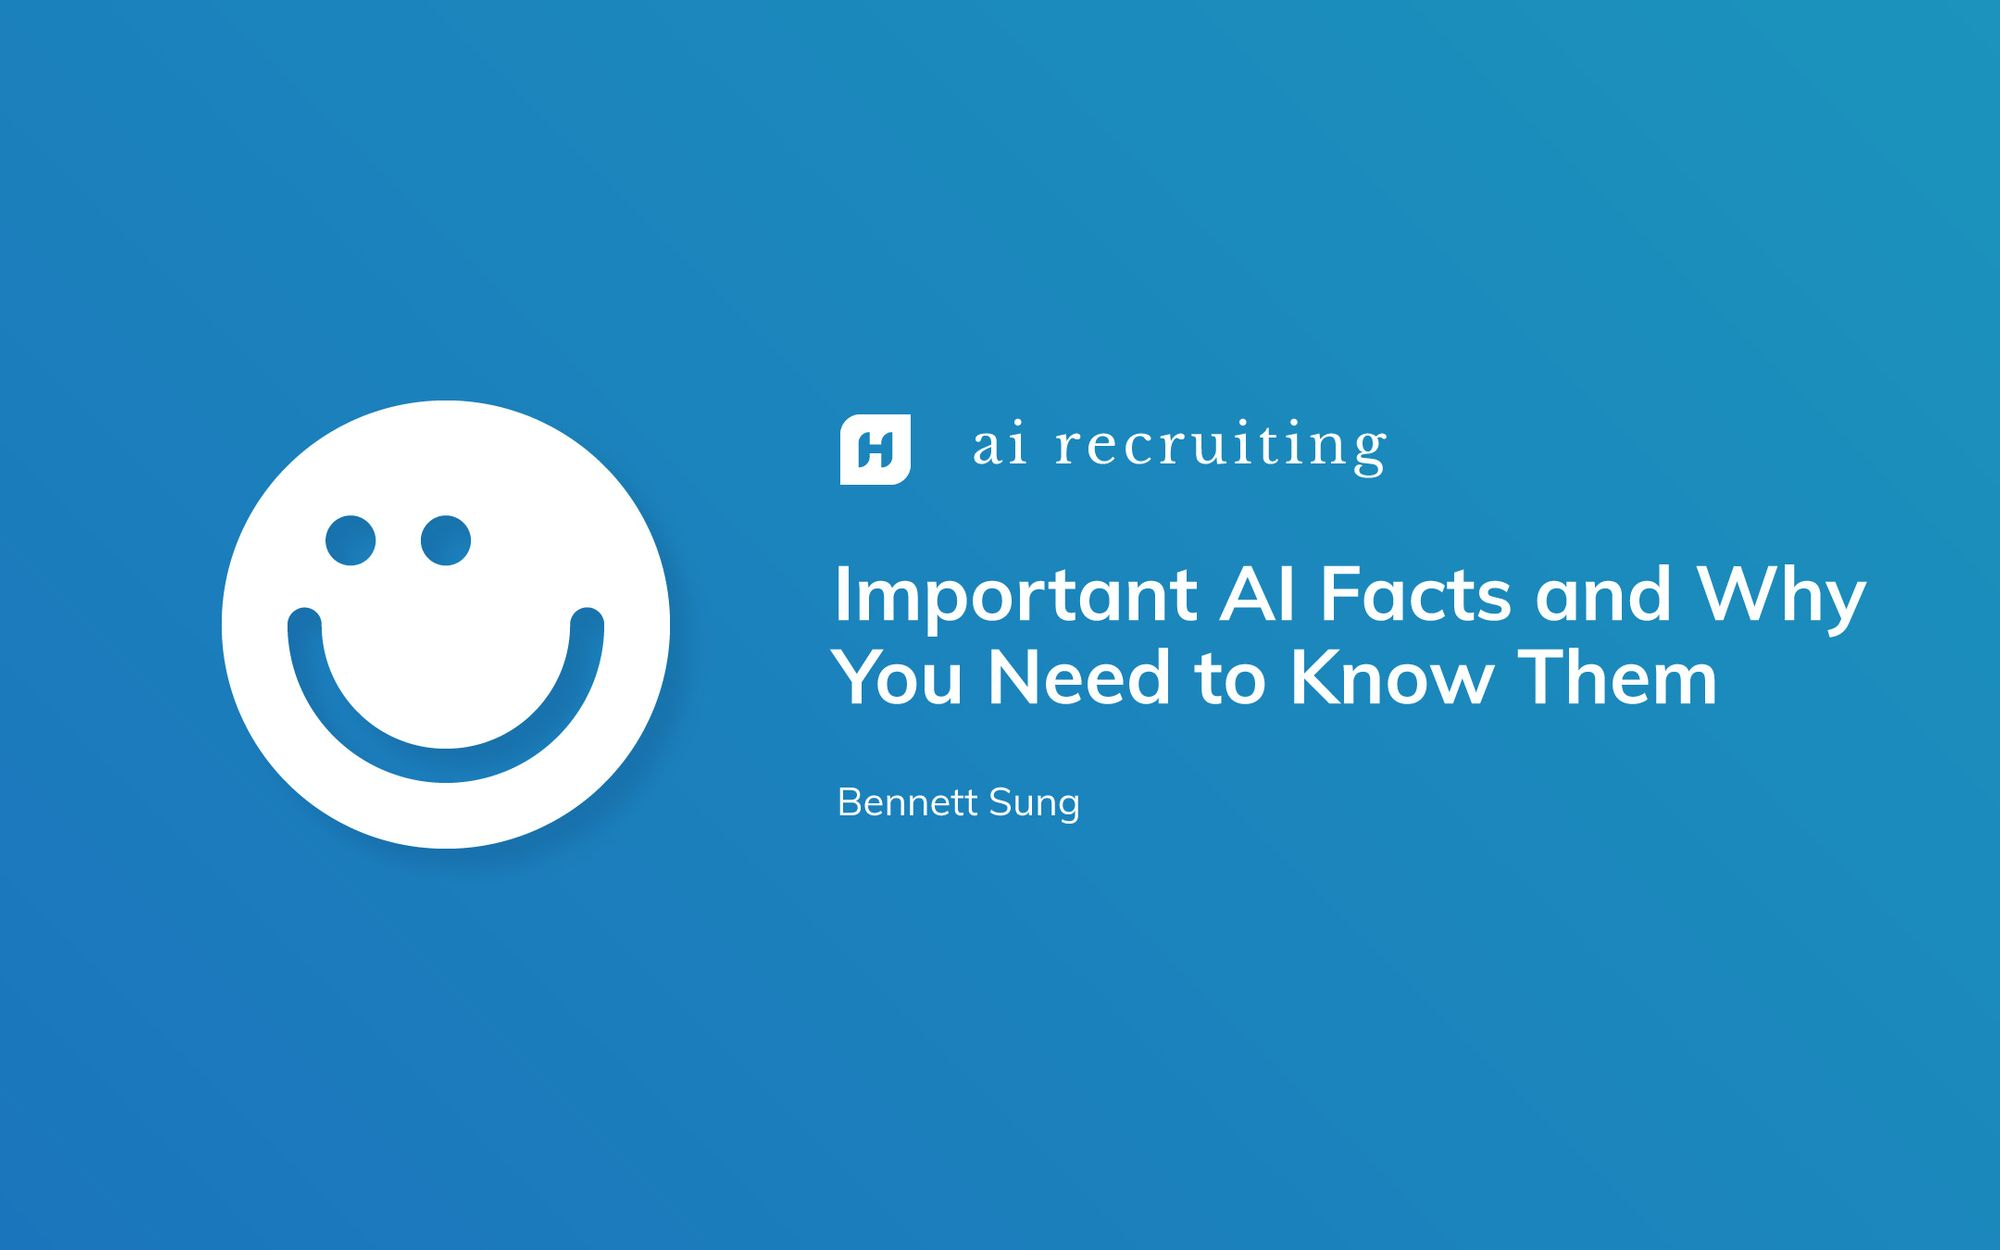 Important AI Facts and Why You Need to Know Them